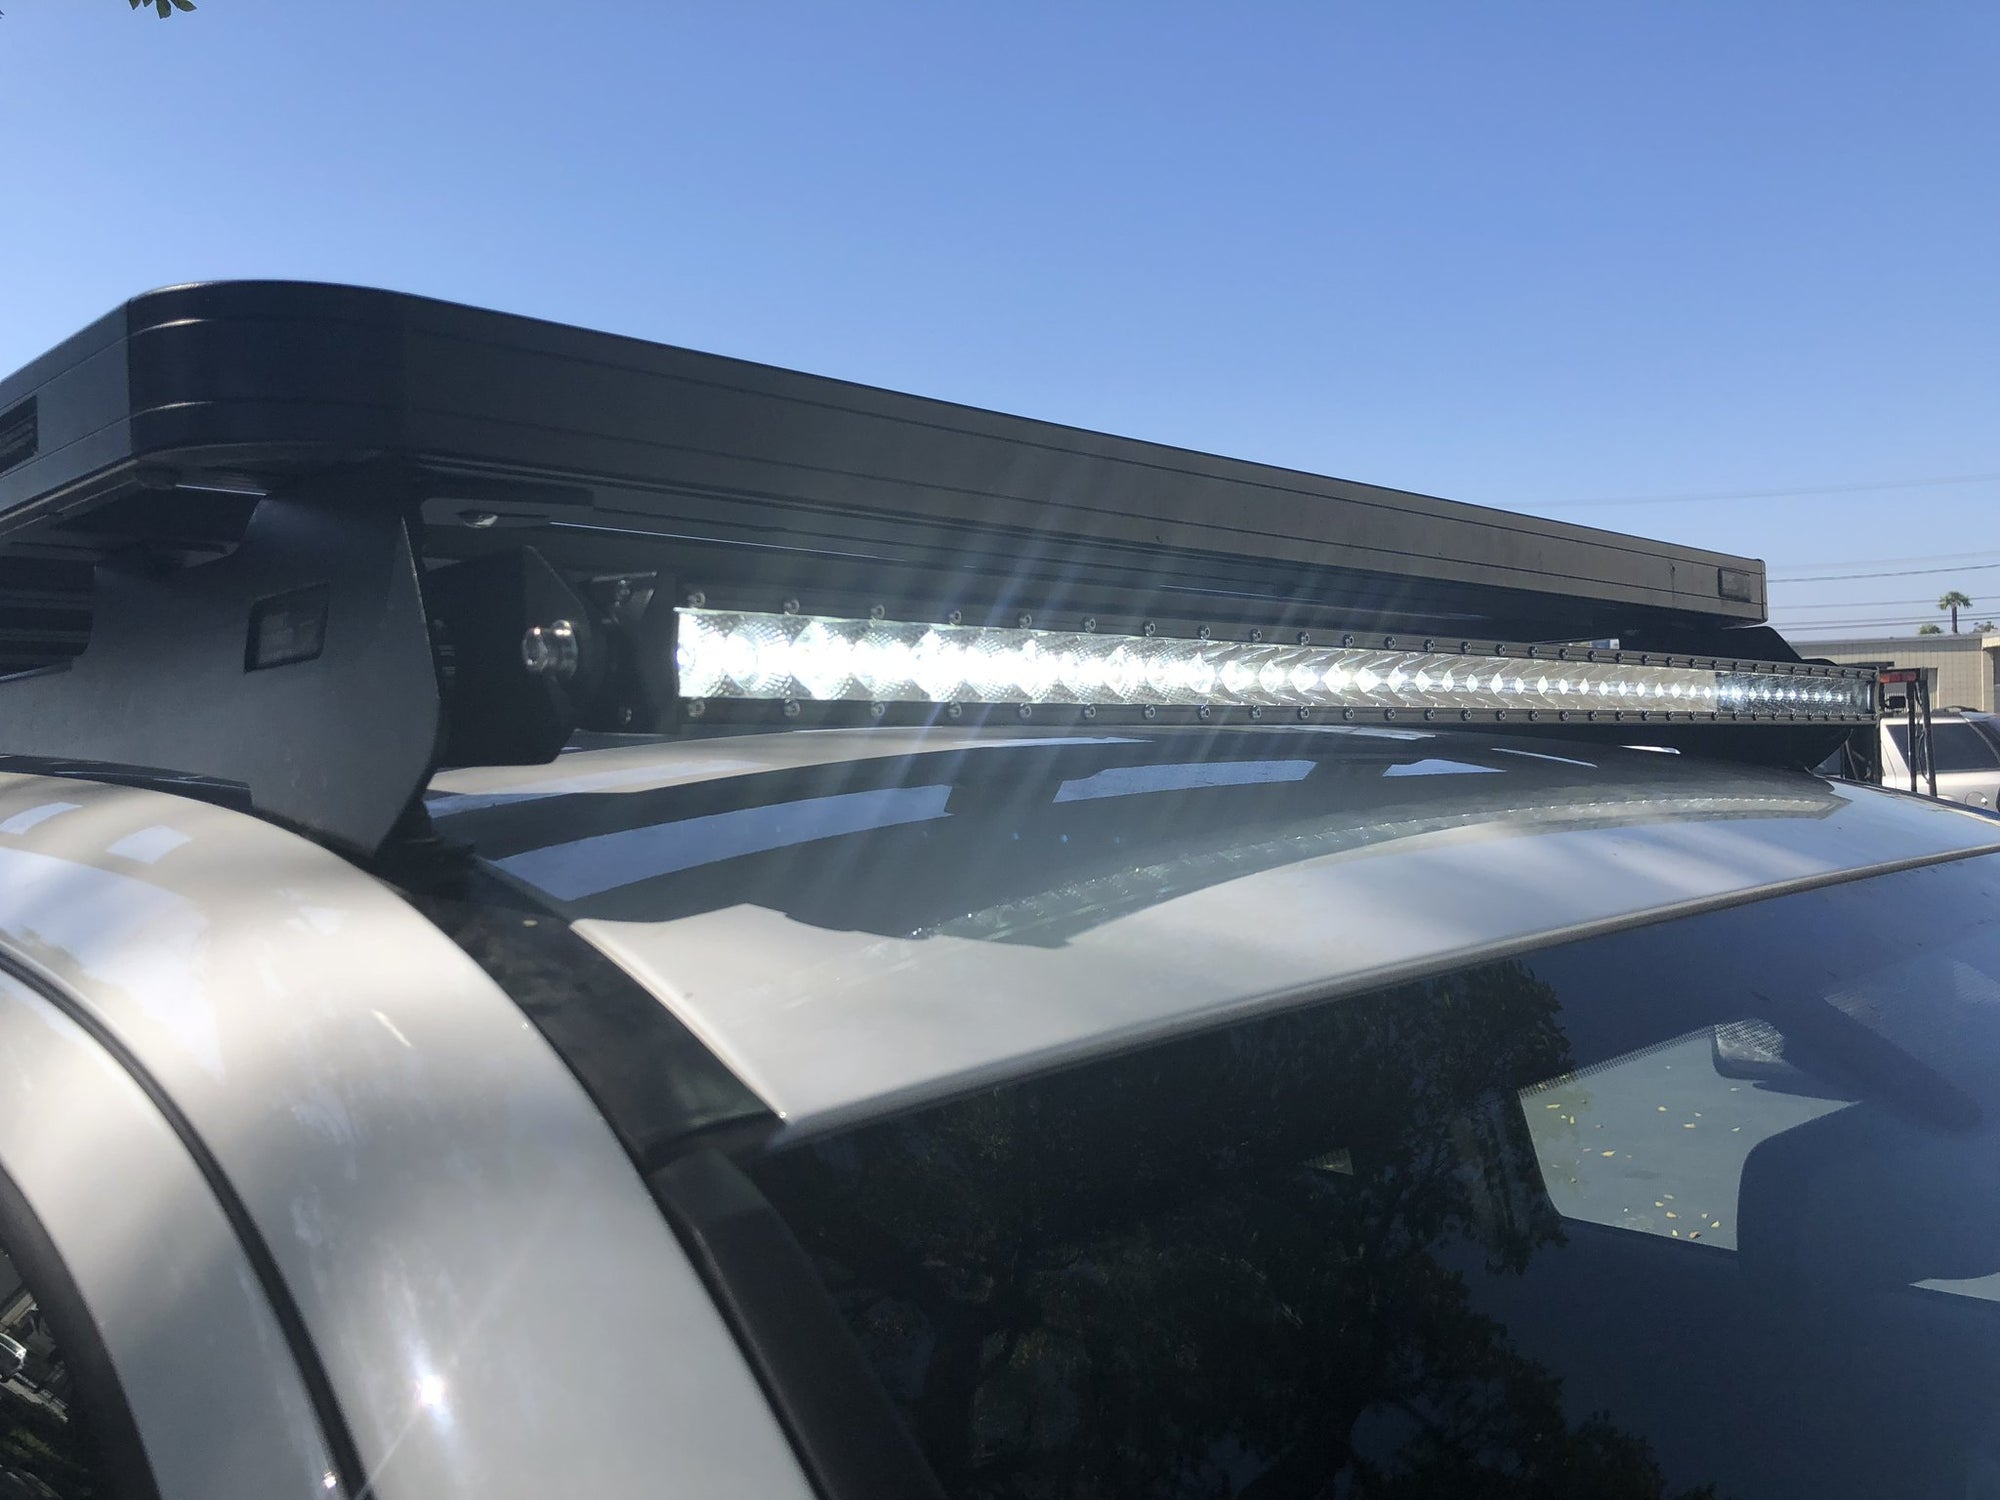 Cali Raised LED Light Bar Combo for Front Runner Slimline Roof Racks